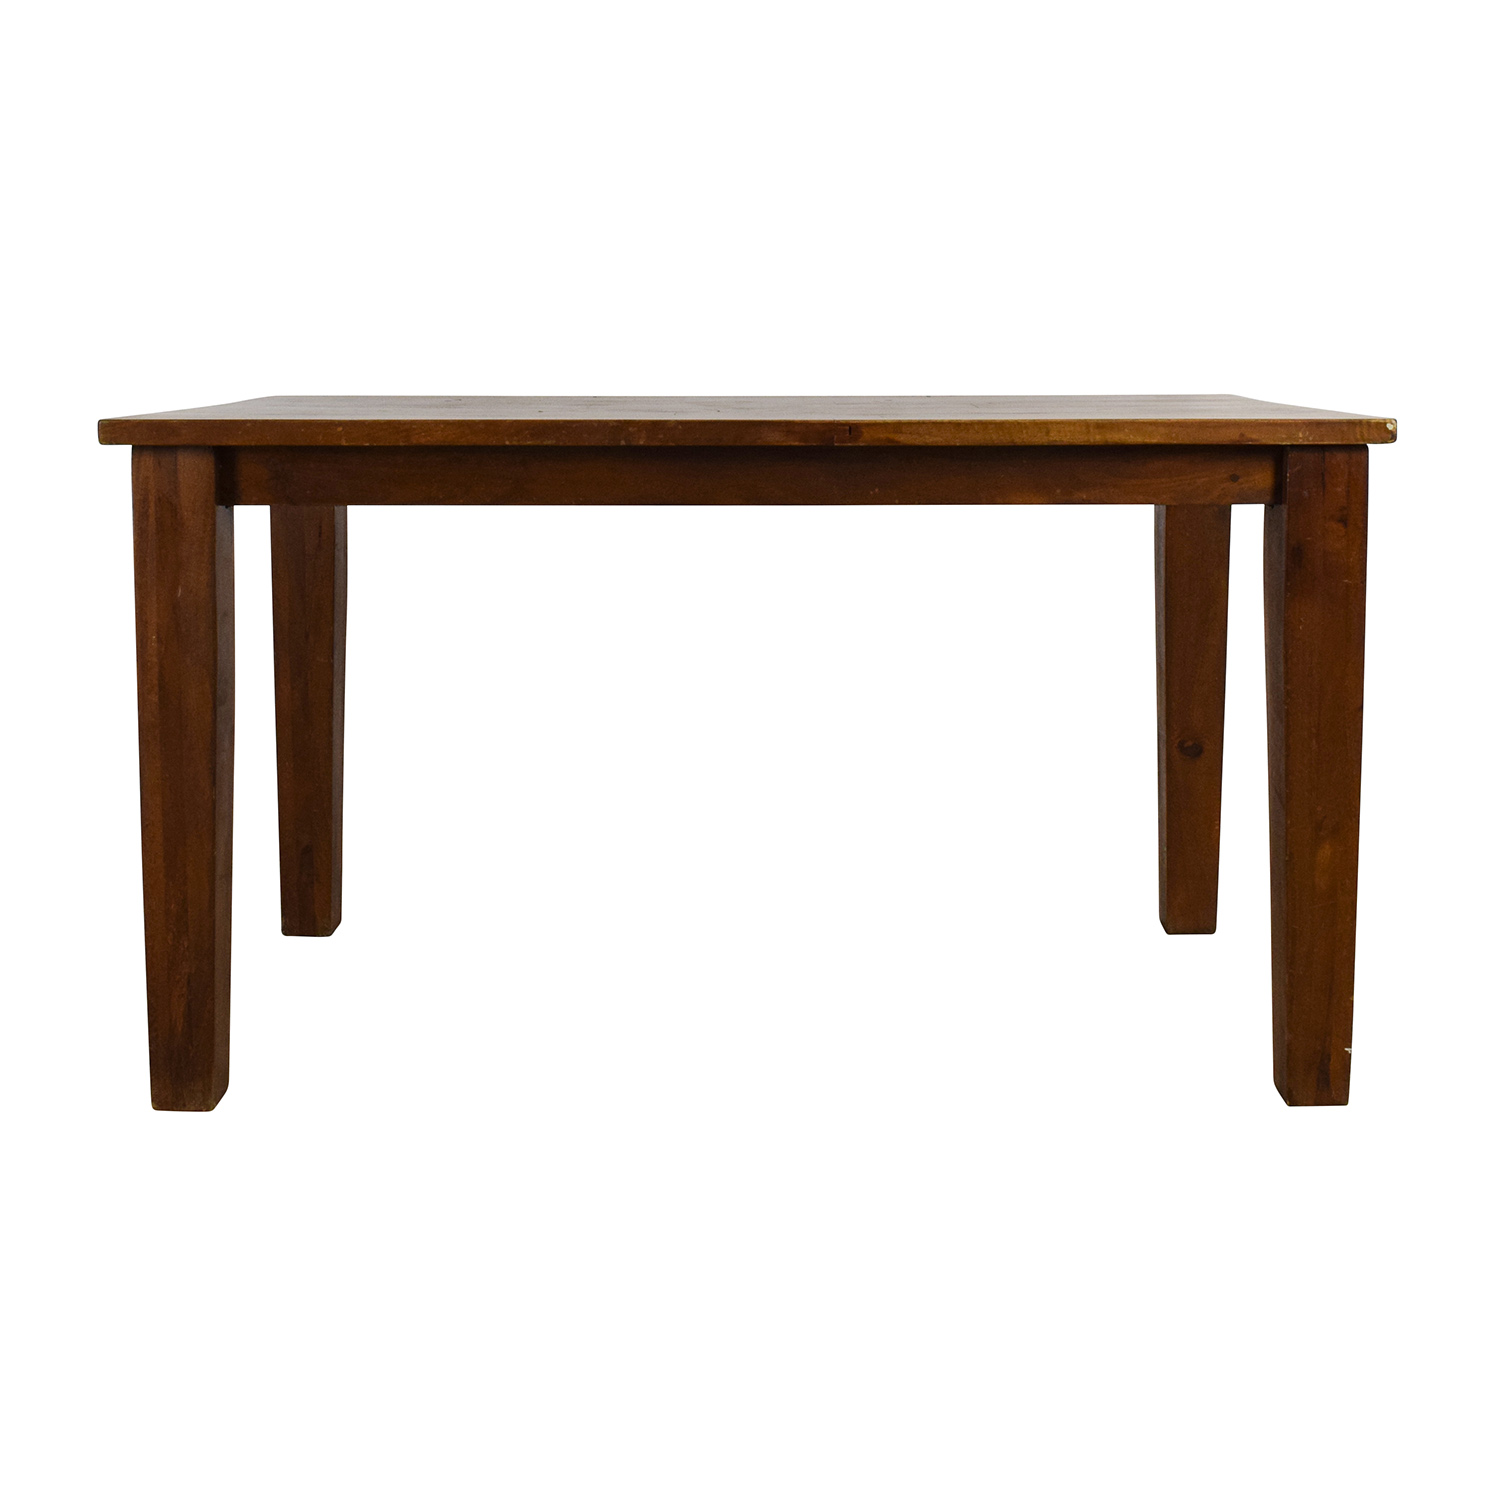 West Elm West Elm Indian Rosewood Dining Table coupon